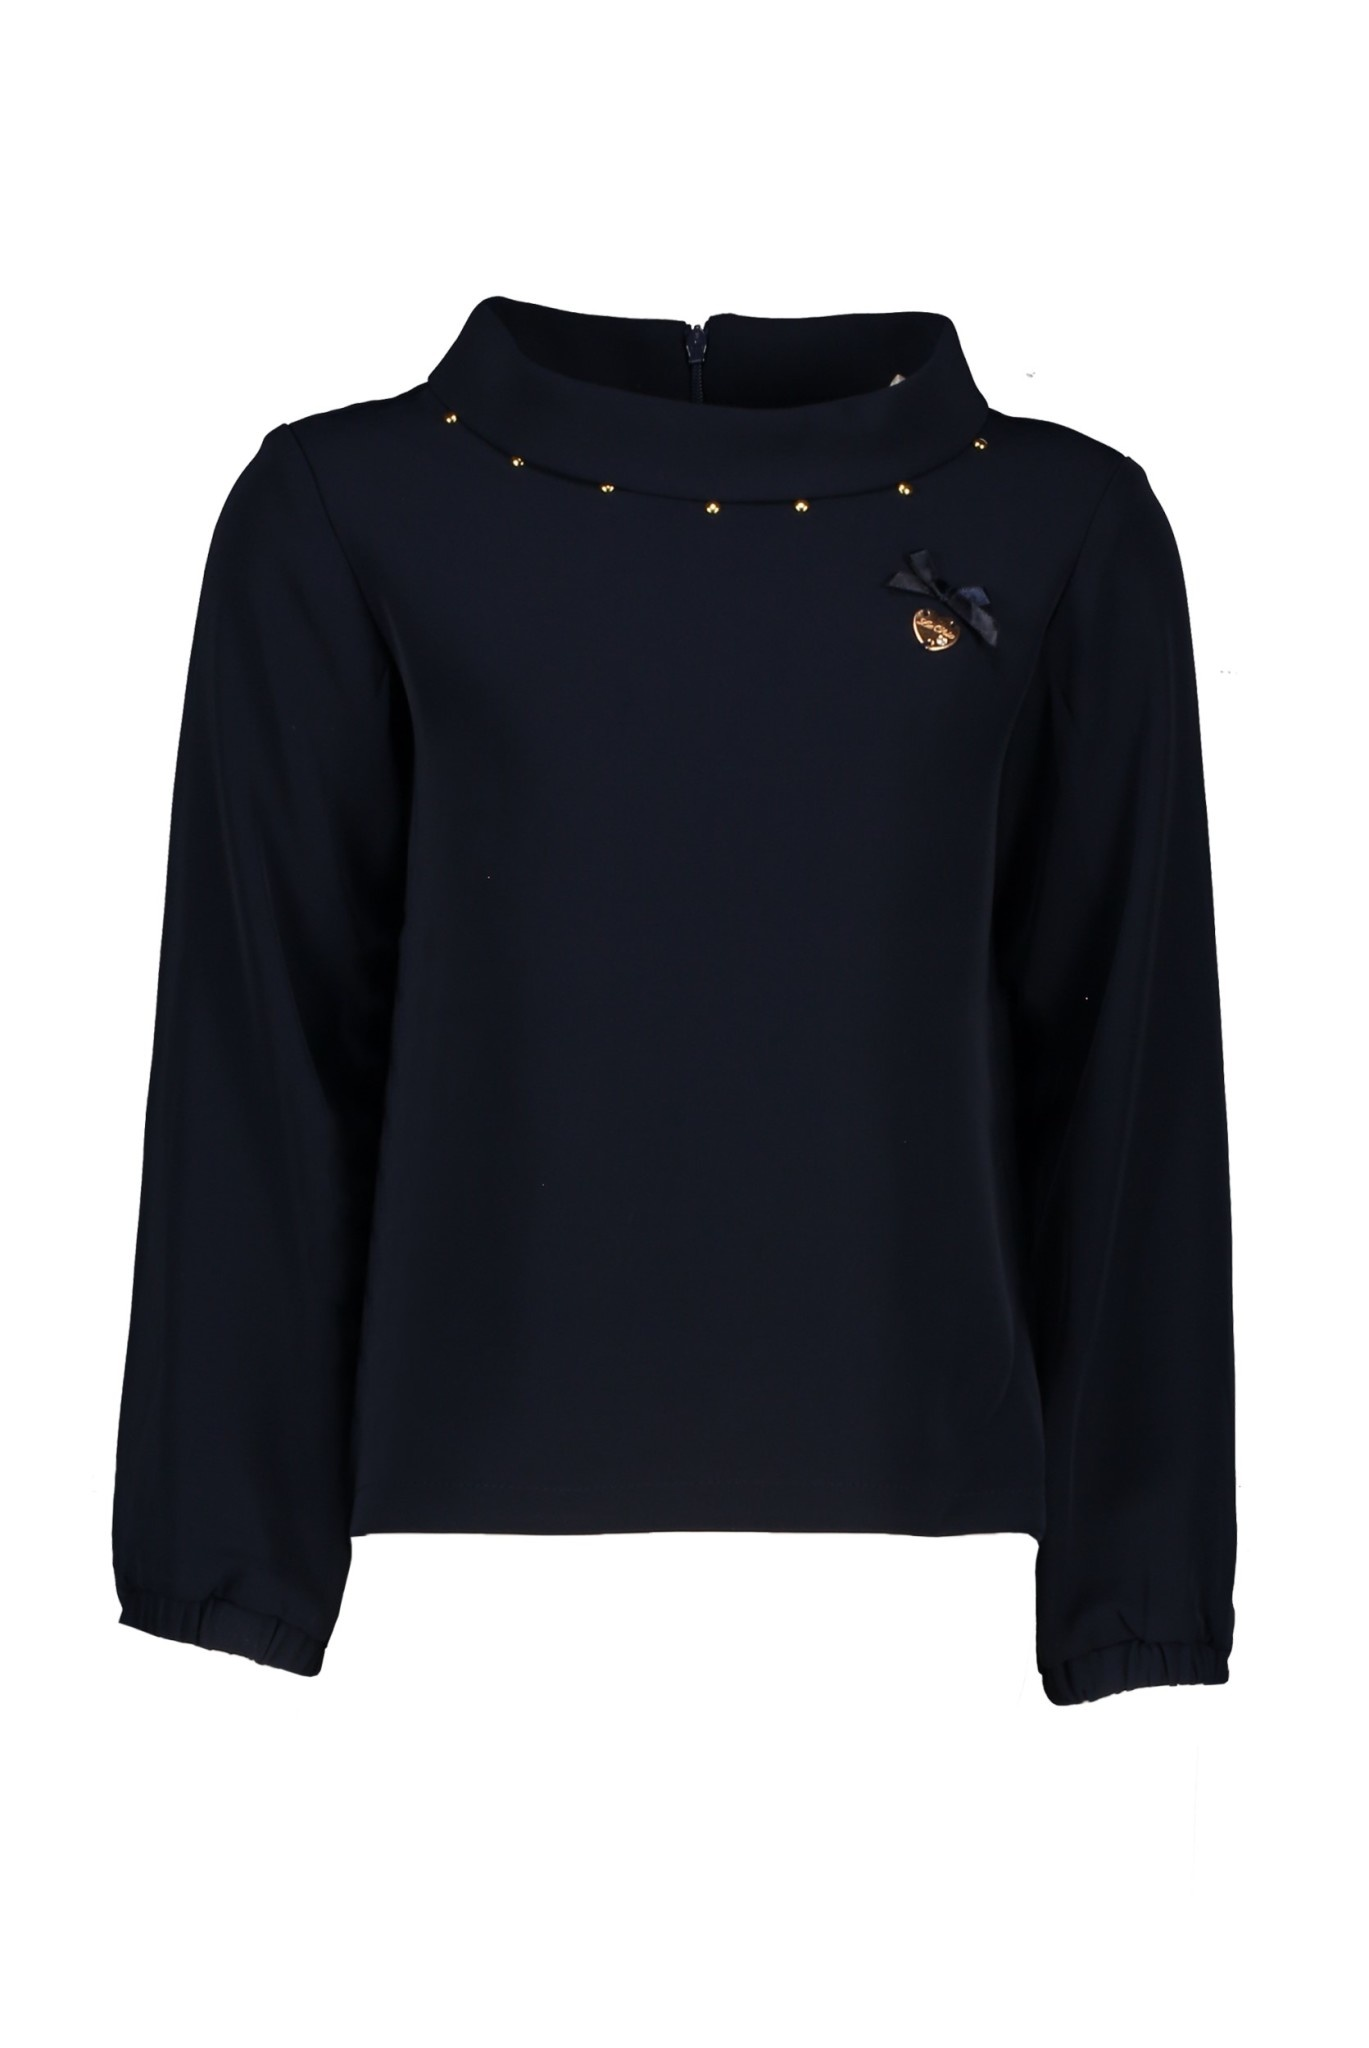 Lechic Le Chic Girls Navy Blouse